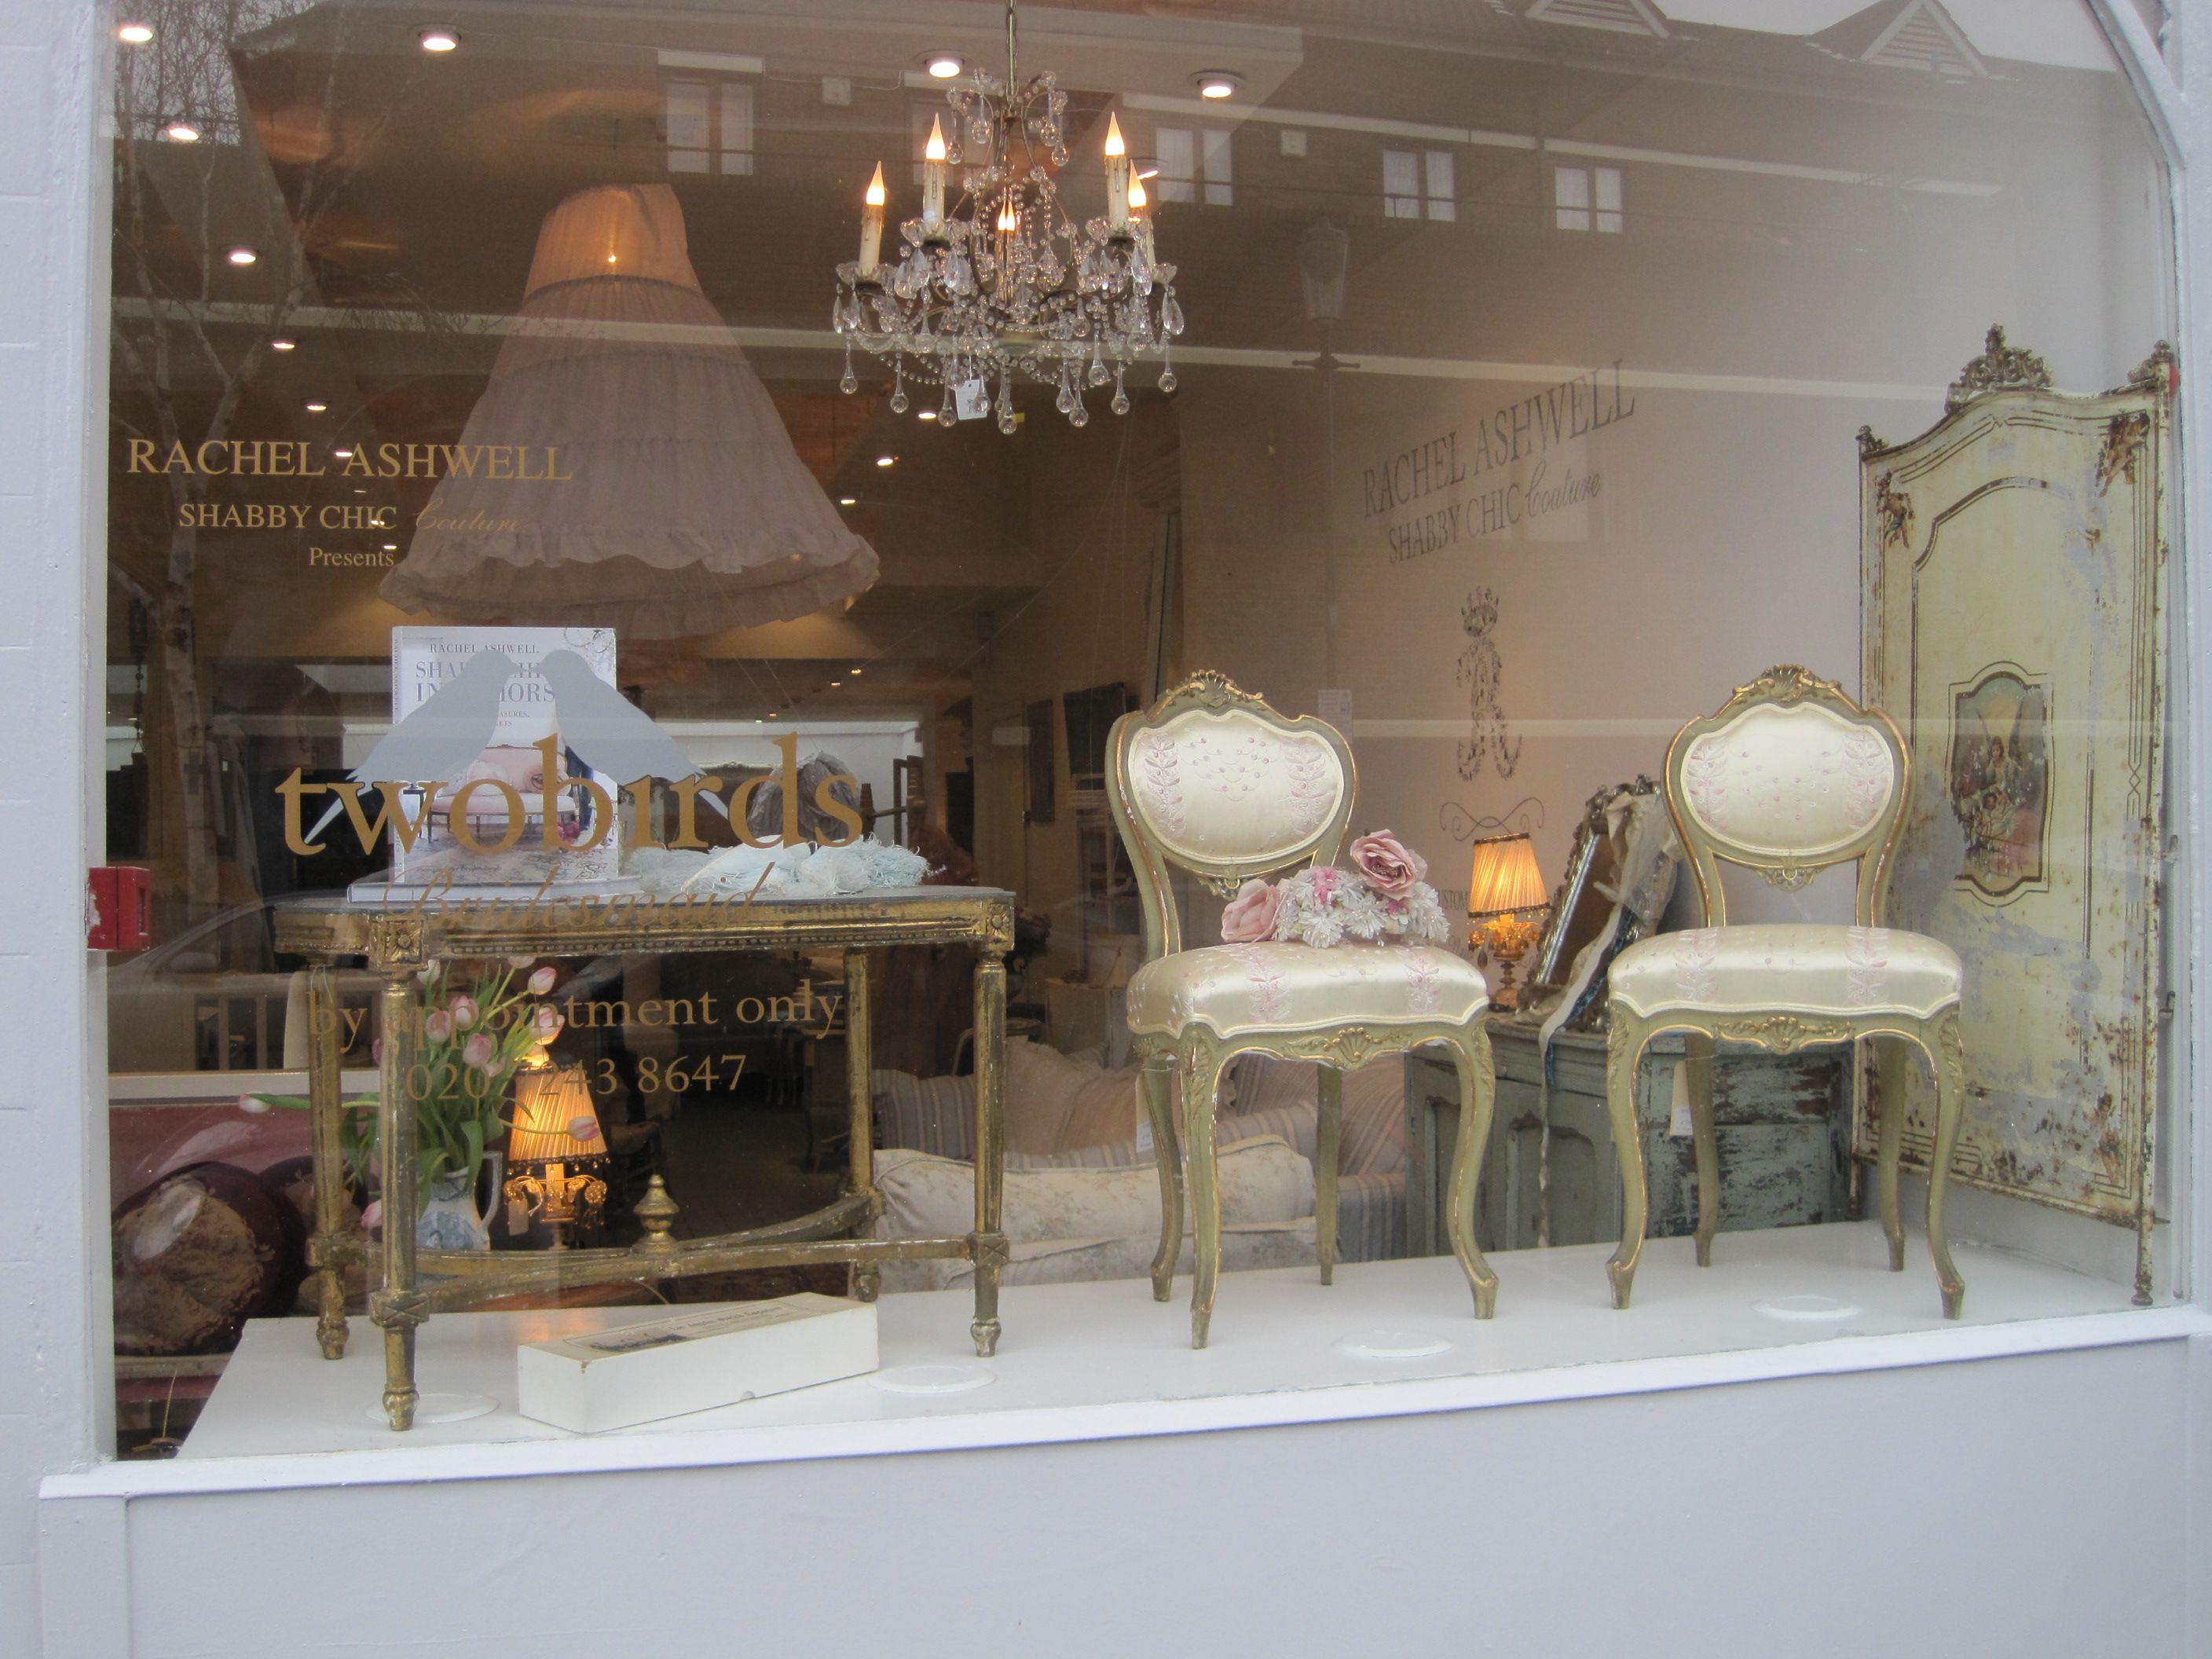 Rachel Ashwell Shabby Chic Couture Store, London